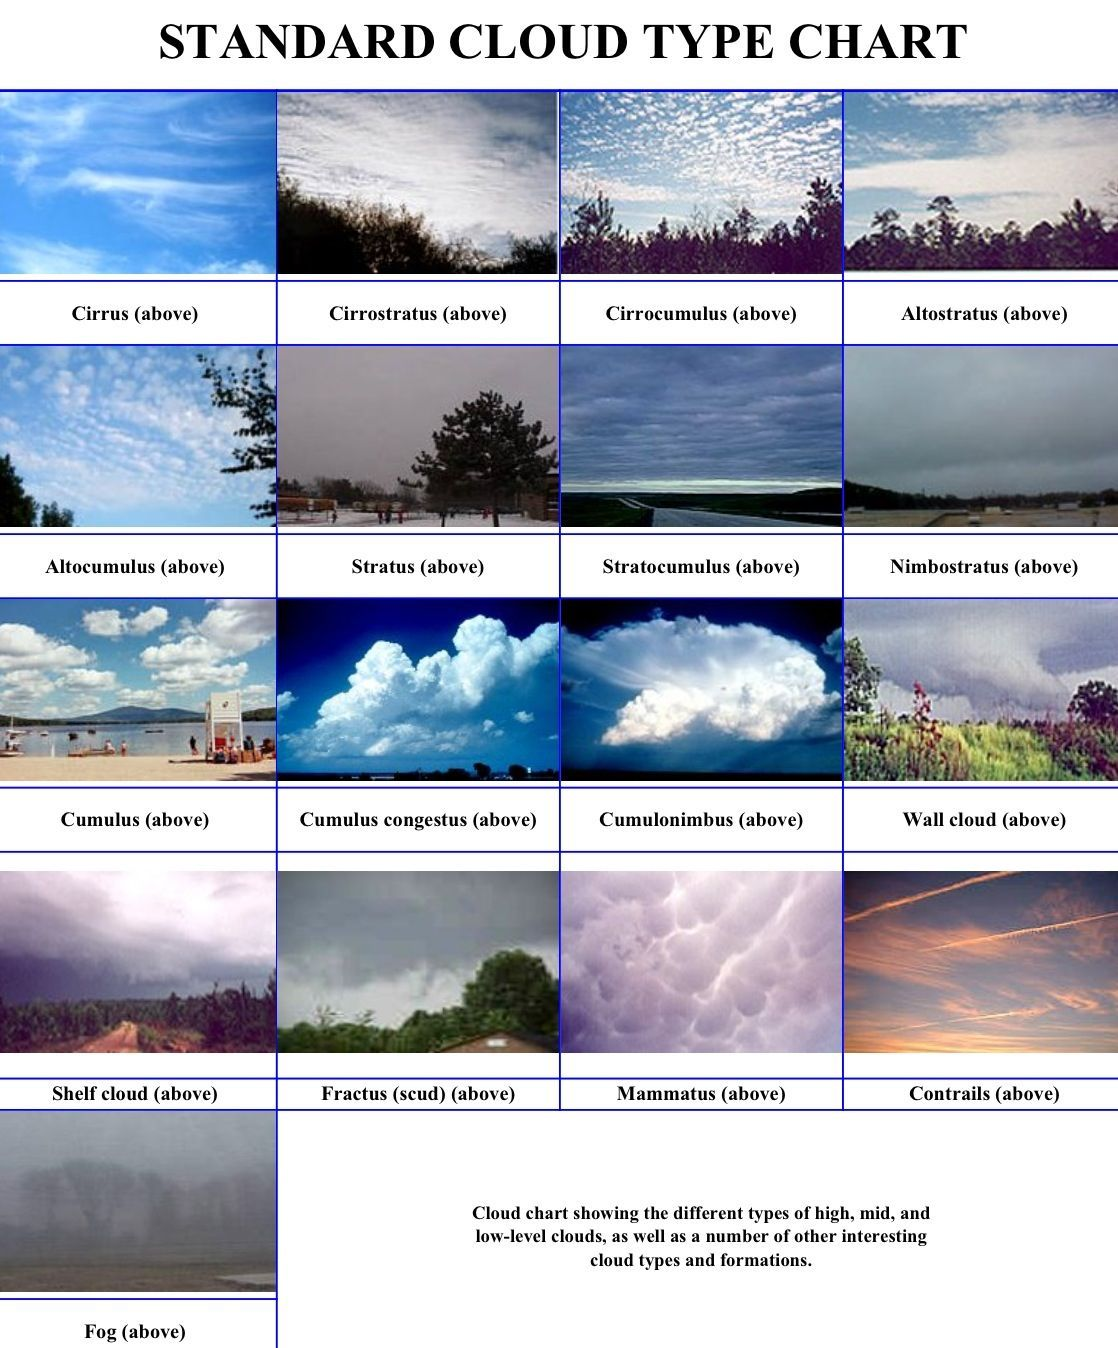 Worksheets Types Of Clouds Worksheet cloud types i believe the are forgetting new asperatus clouds clouds